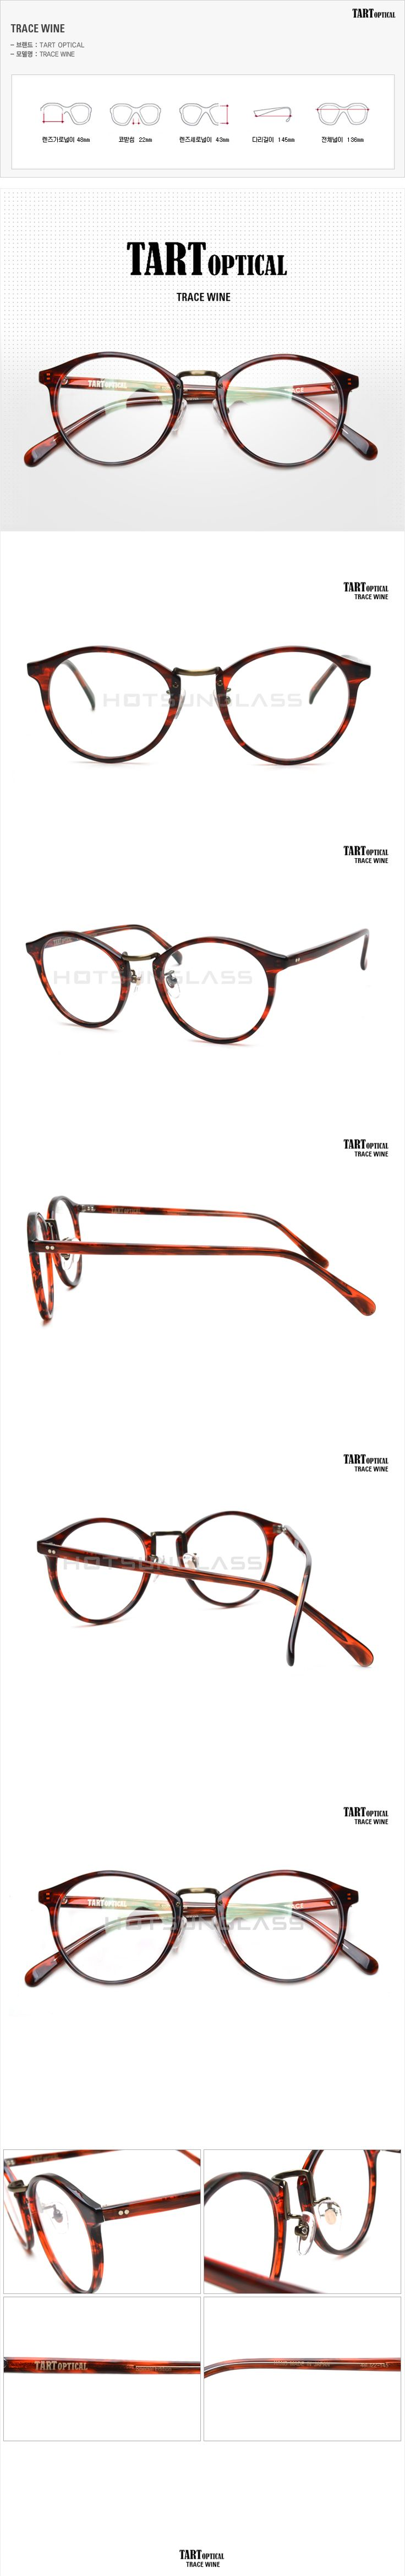 [Tart Optical glasses] TRACE WINE - HOTSUNGLASS hot sunglasses / eyewear brand Shop selector